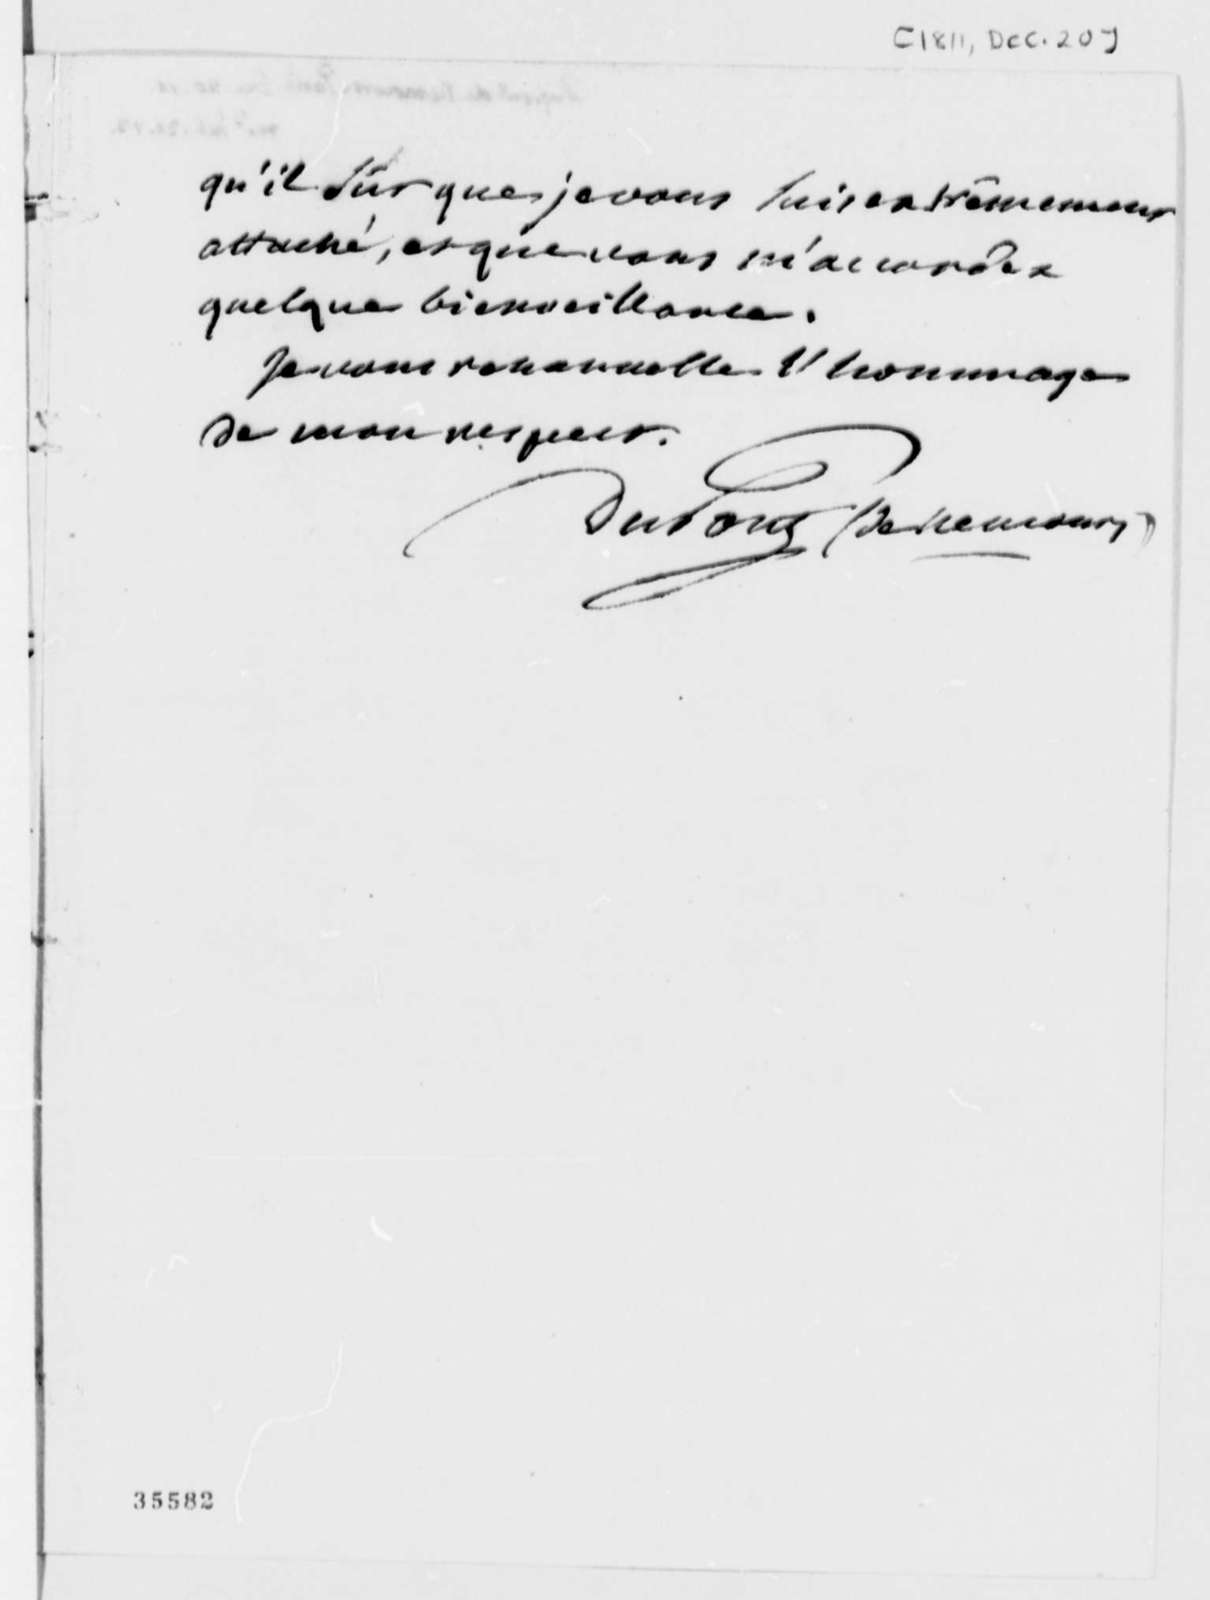 Pierre S. Dupont de Nemours to Thomas Jefferson, December 20, 1811, in French